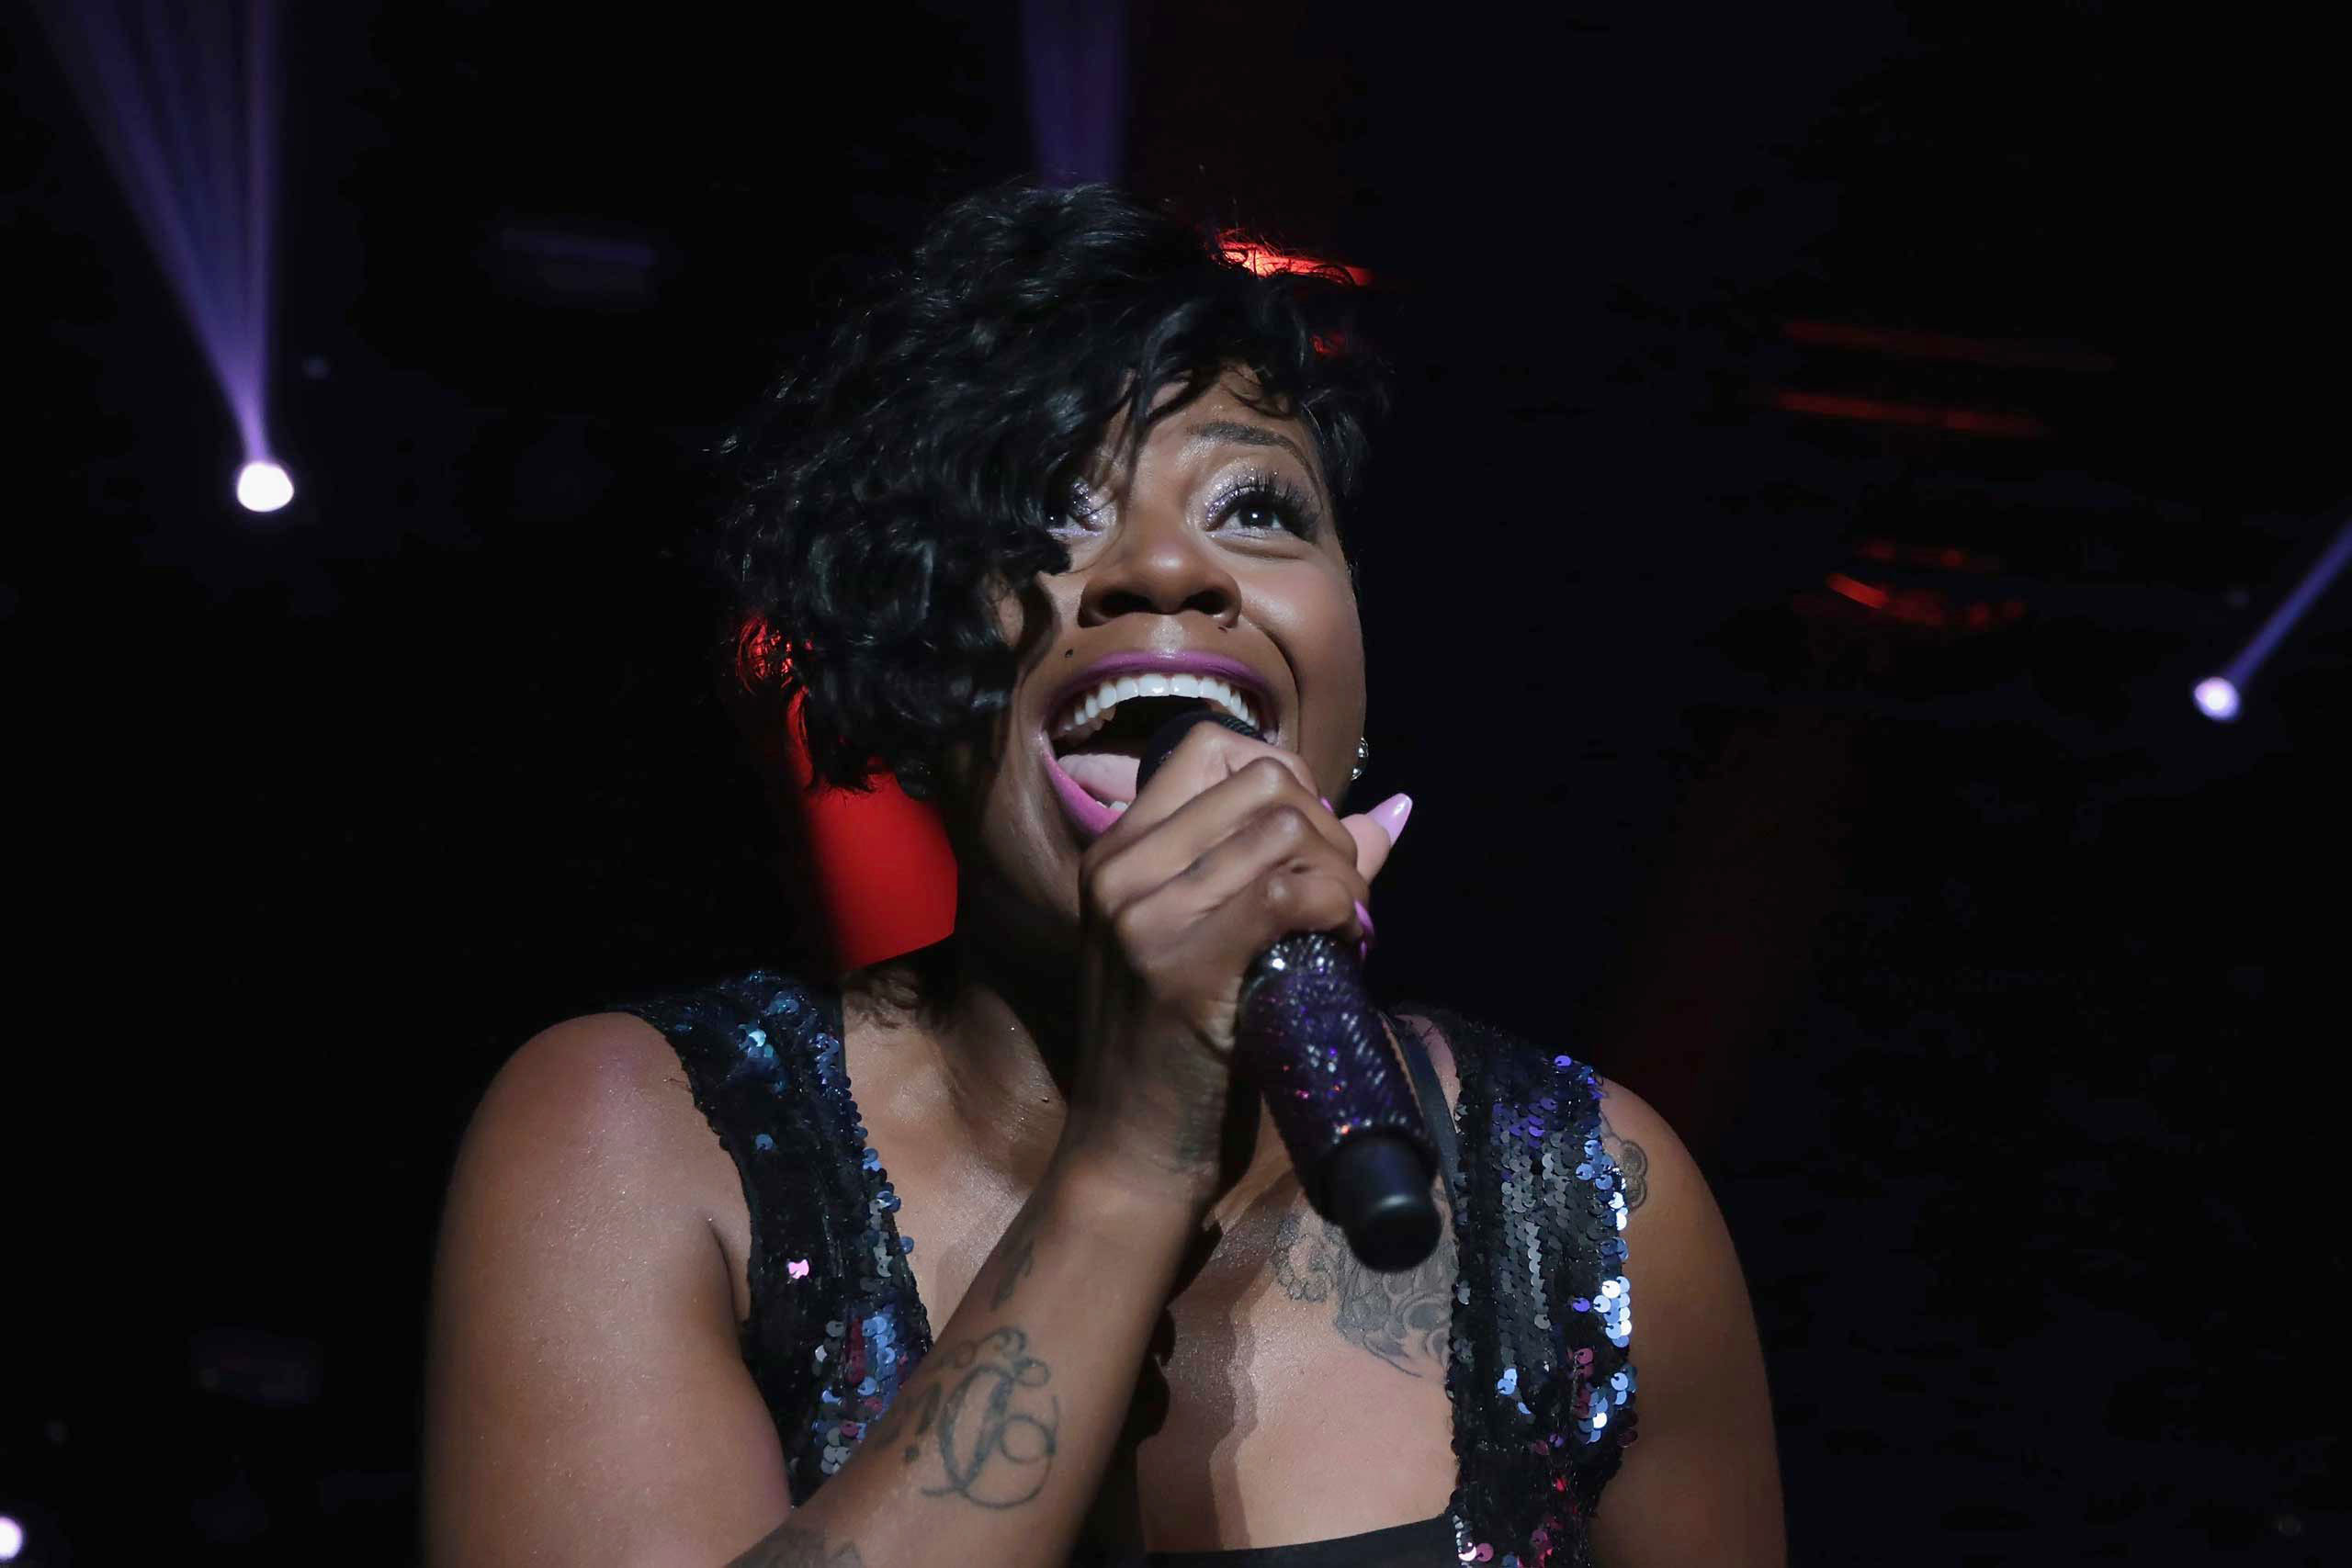 <b>Fantasia</b>, winner of season 3, performs at the 7th Annual Music Festival at Boardwalk Hall Arena in Atlantic City, N.J. on May 9, 2015.